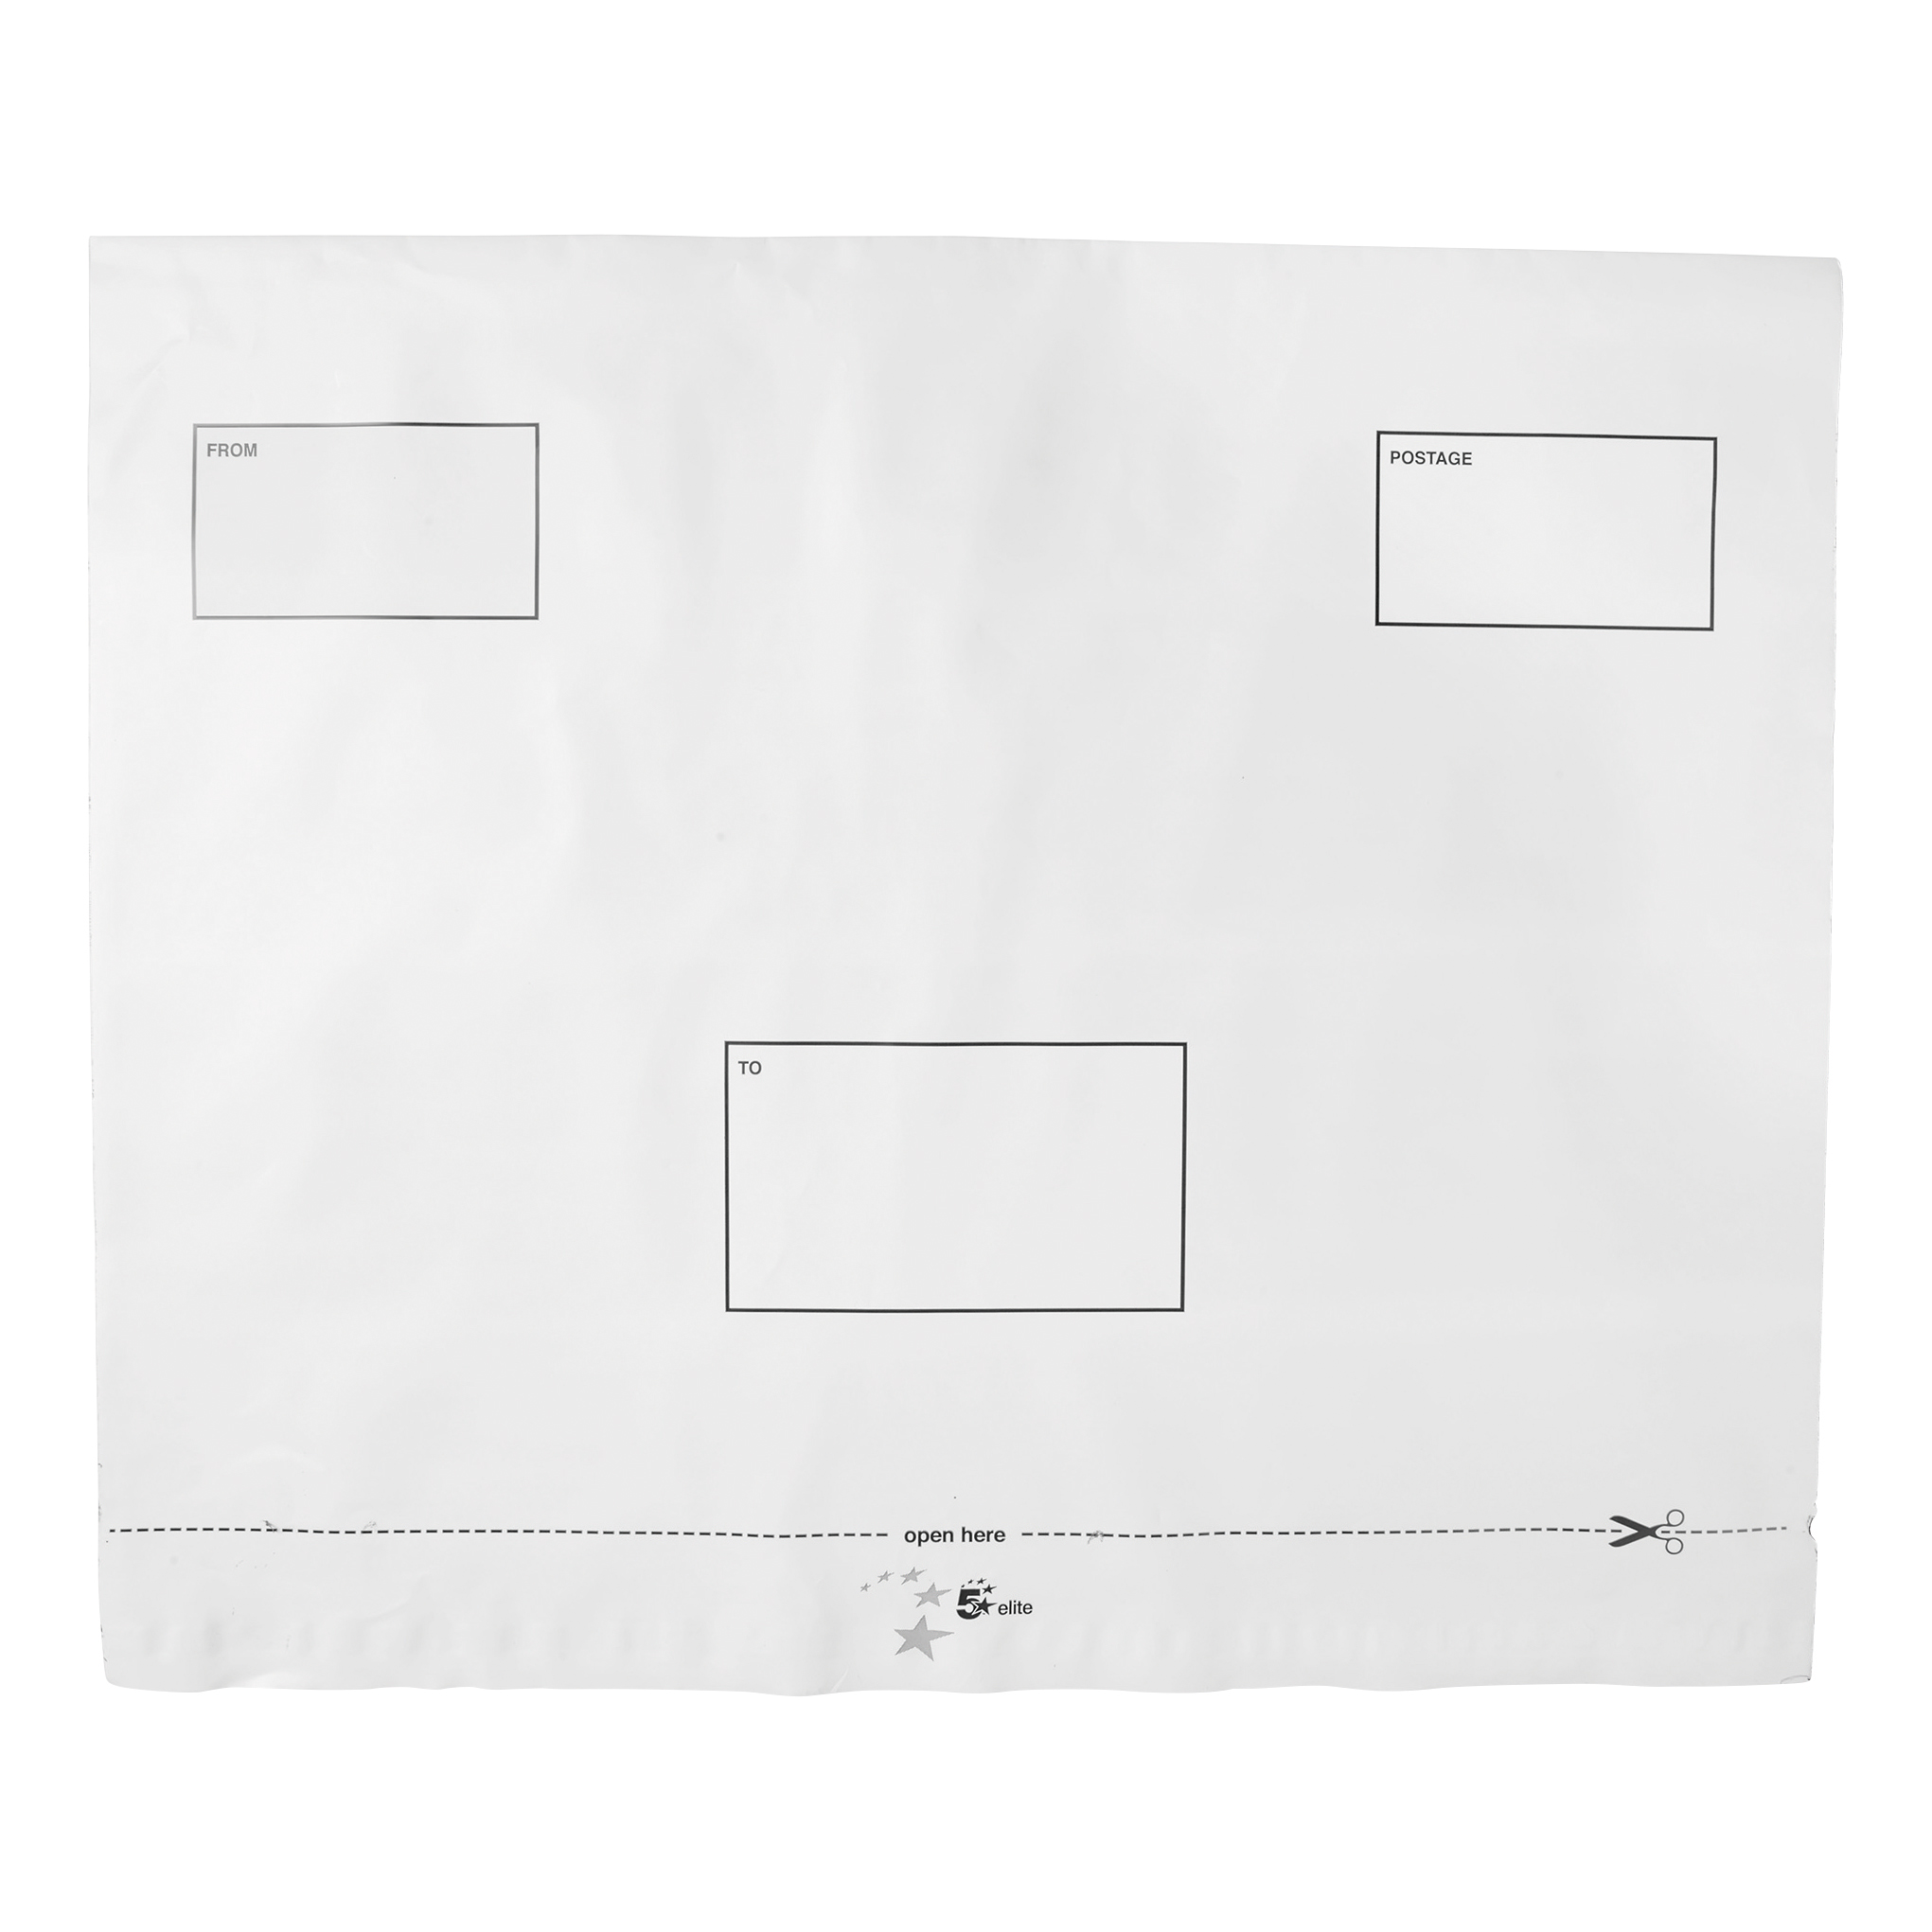 Polythene Envelopes 5 Star Elite DX Bags Self Seal Waterproof White 455x330mm &50mm Flap [Pack 100]